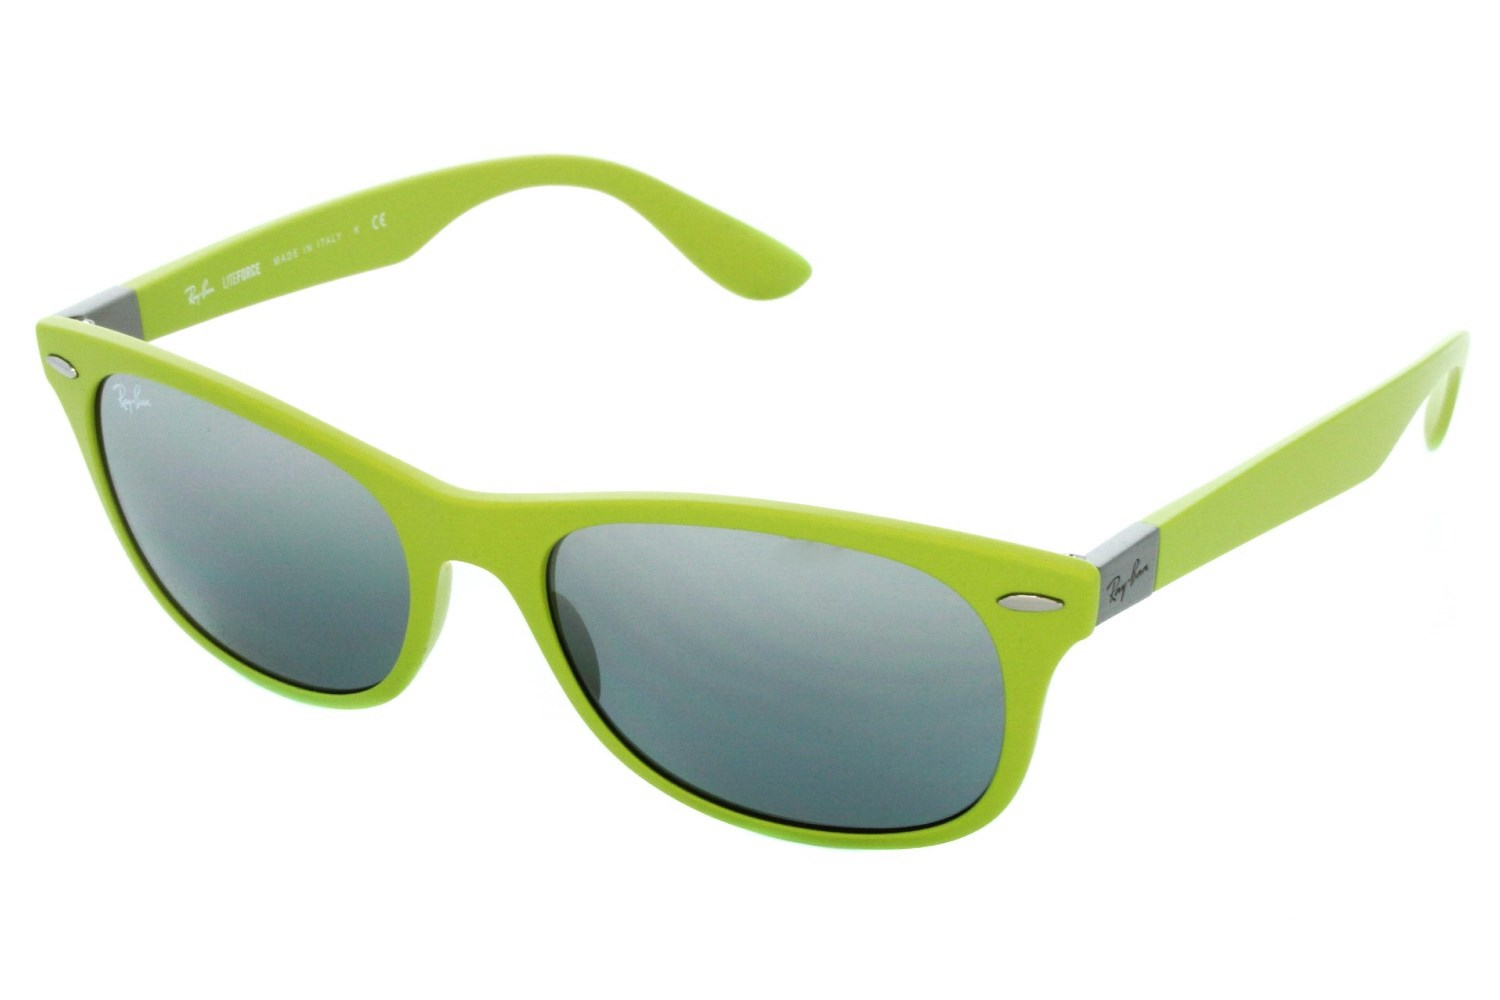 2df3e66ed29 ... EAN 8053672234091 product image for Ray-Ban RB4207 Sunglasses